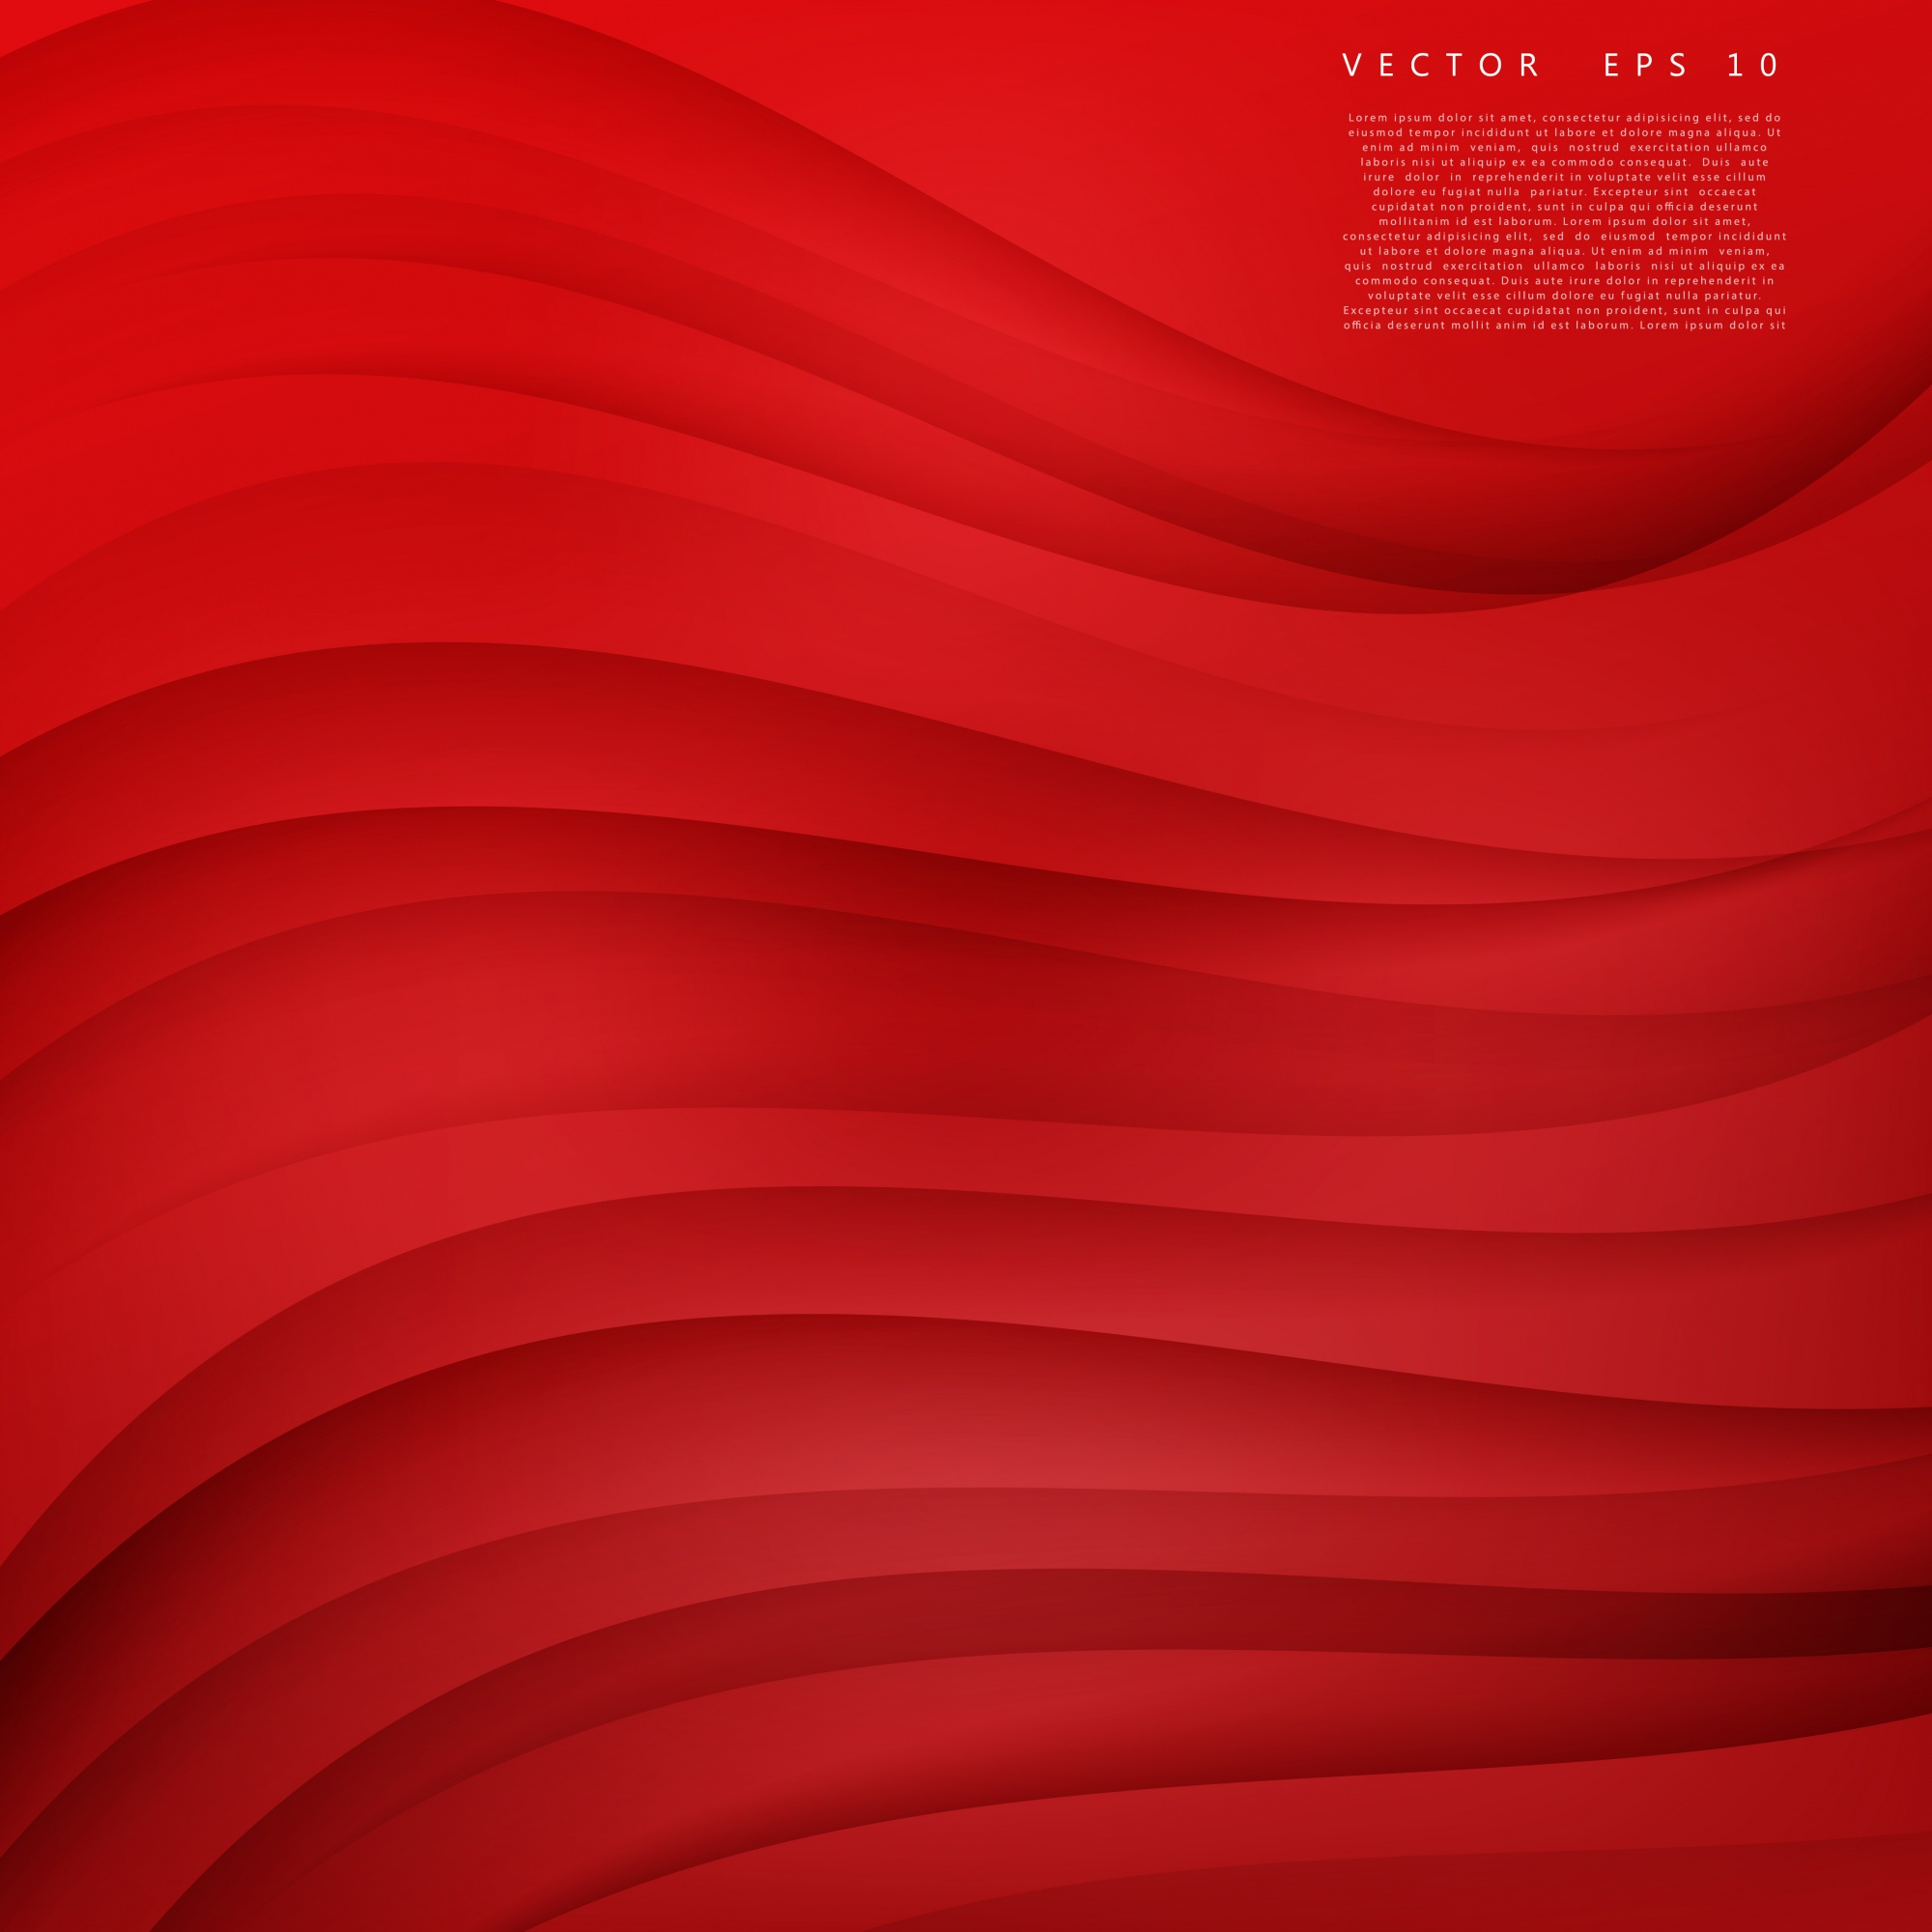 Red background curve